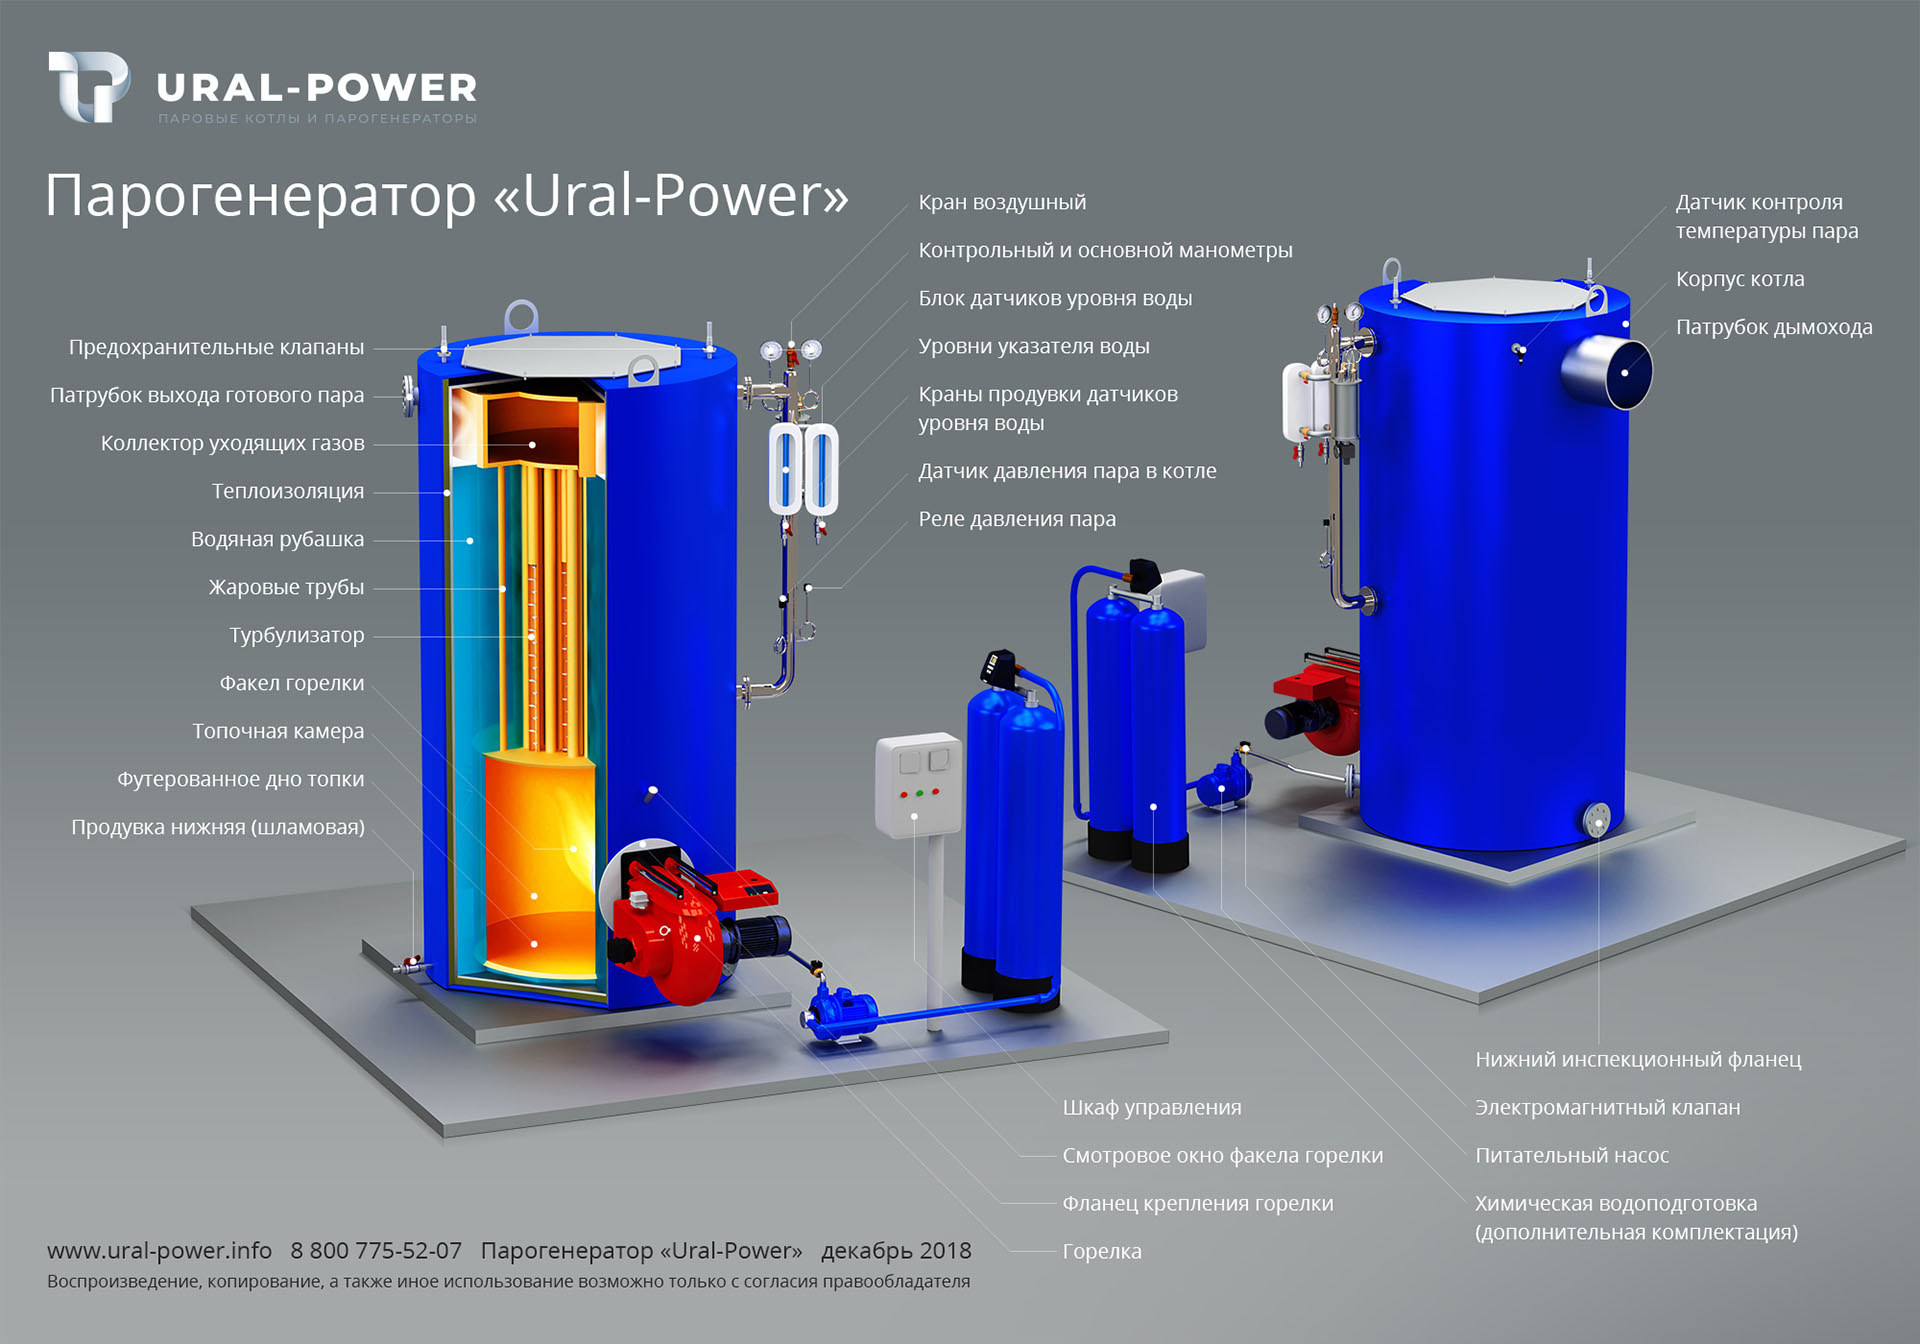 Парогенератор на газе URAL-POWER в разрезе